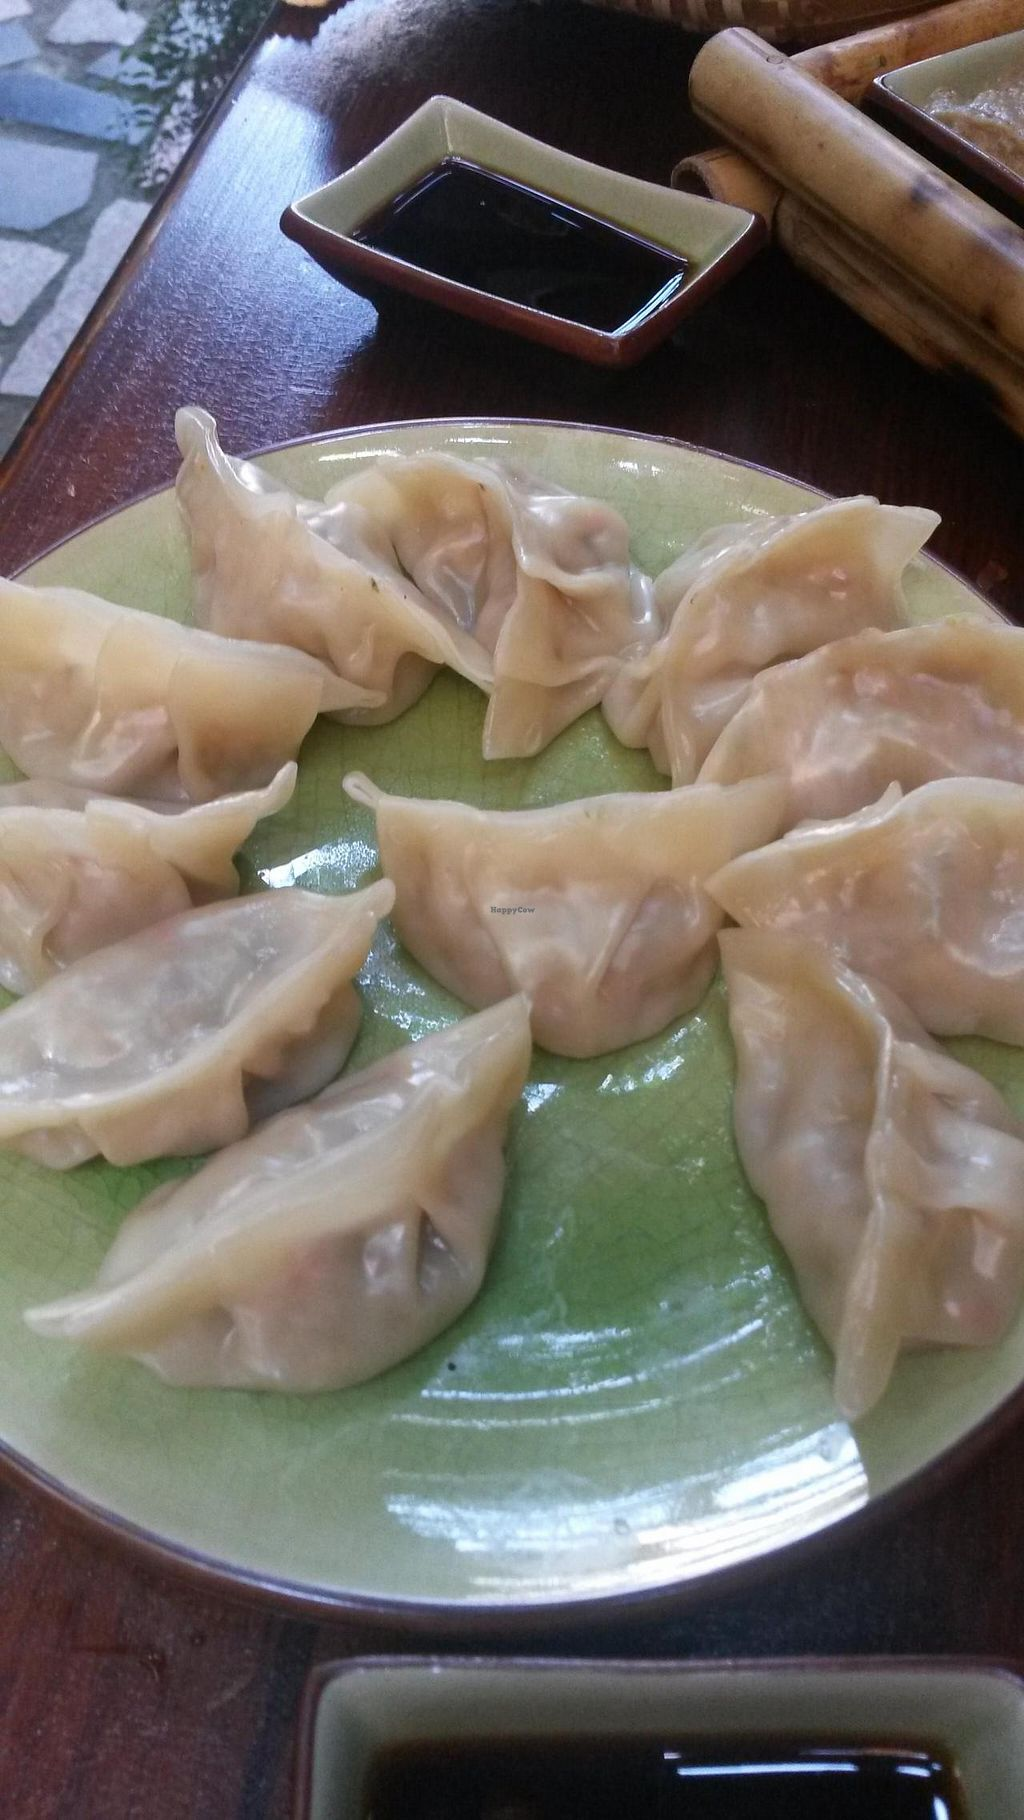 "Photo of Mood Food Energy Cafe  by <a href=""/members/profile/Tania%20Sm"">Tania Sm</a> <br/>Veggie Dumplings <br/> October 23, 2014  - <a href='/contact/abuse/image/50864/83763'>Report</a>"